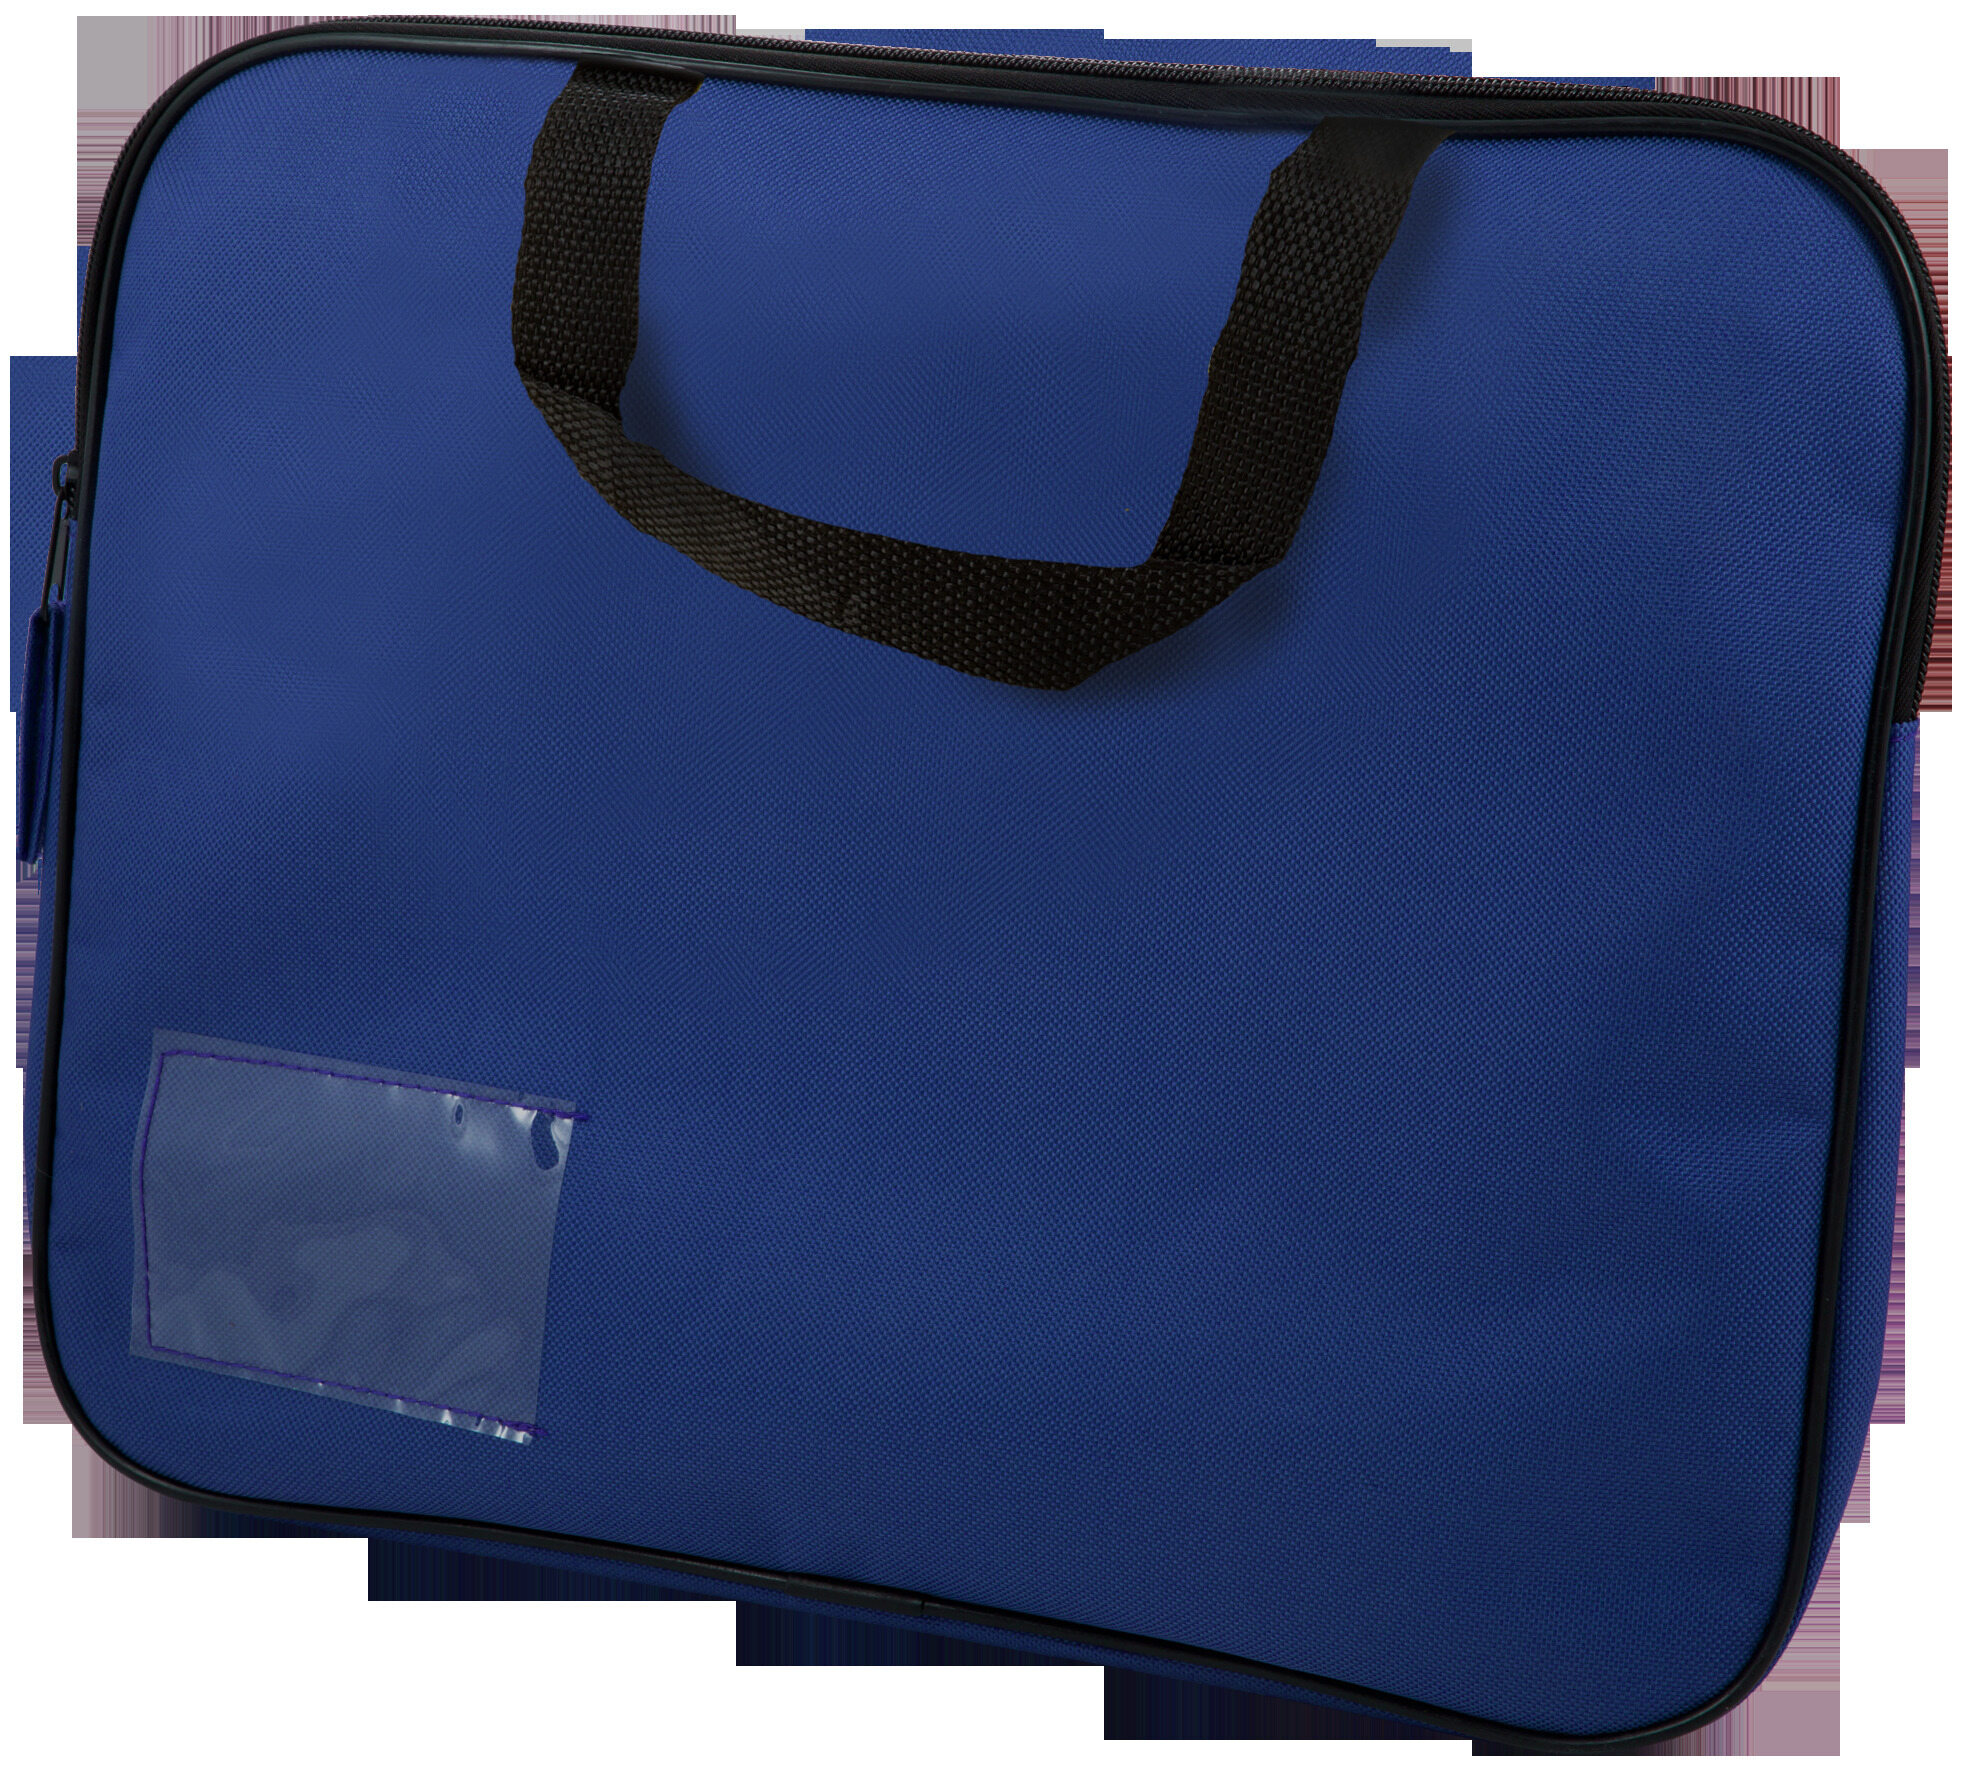 Homework Bag (Book Bag) With Handle - Navy